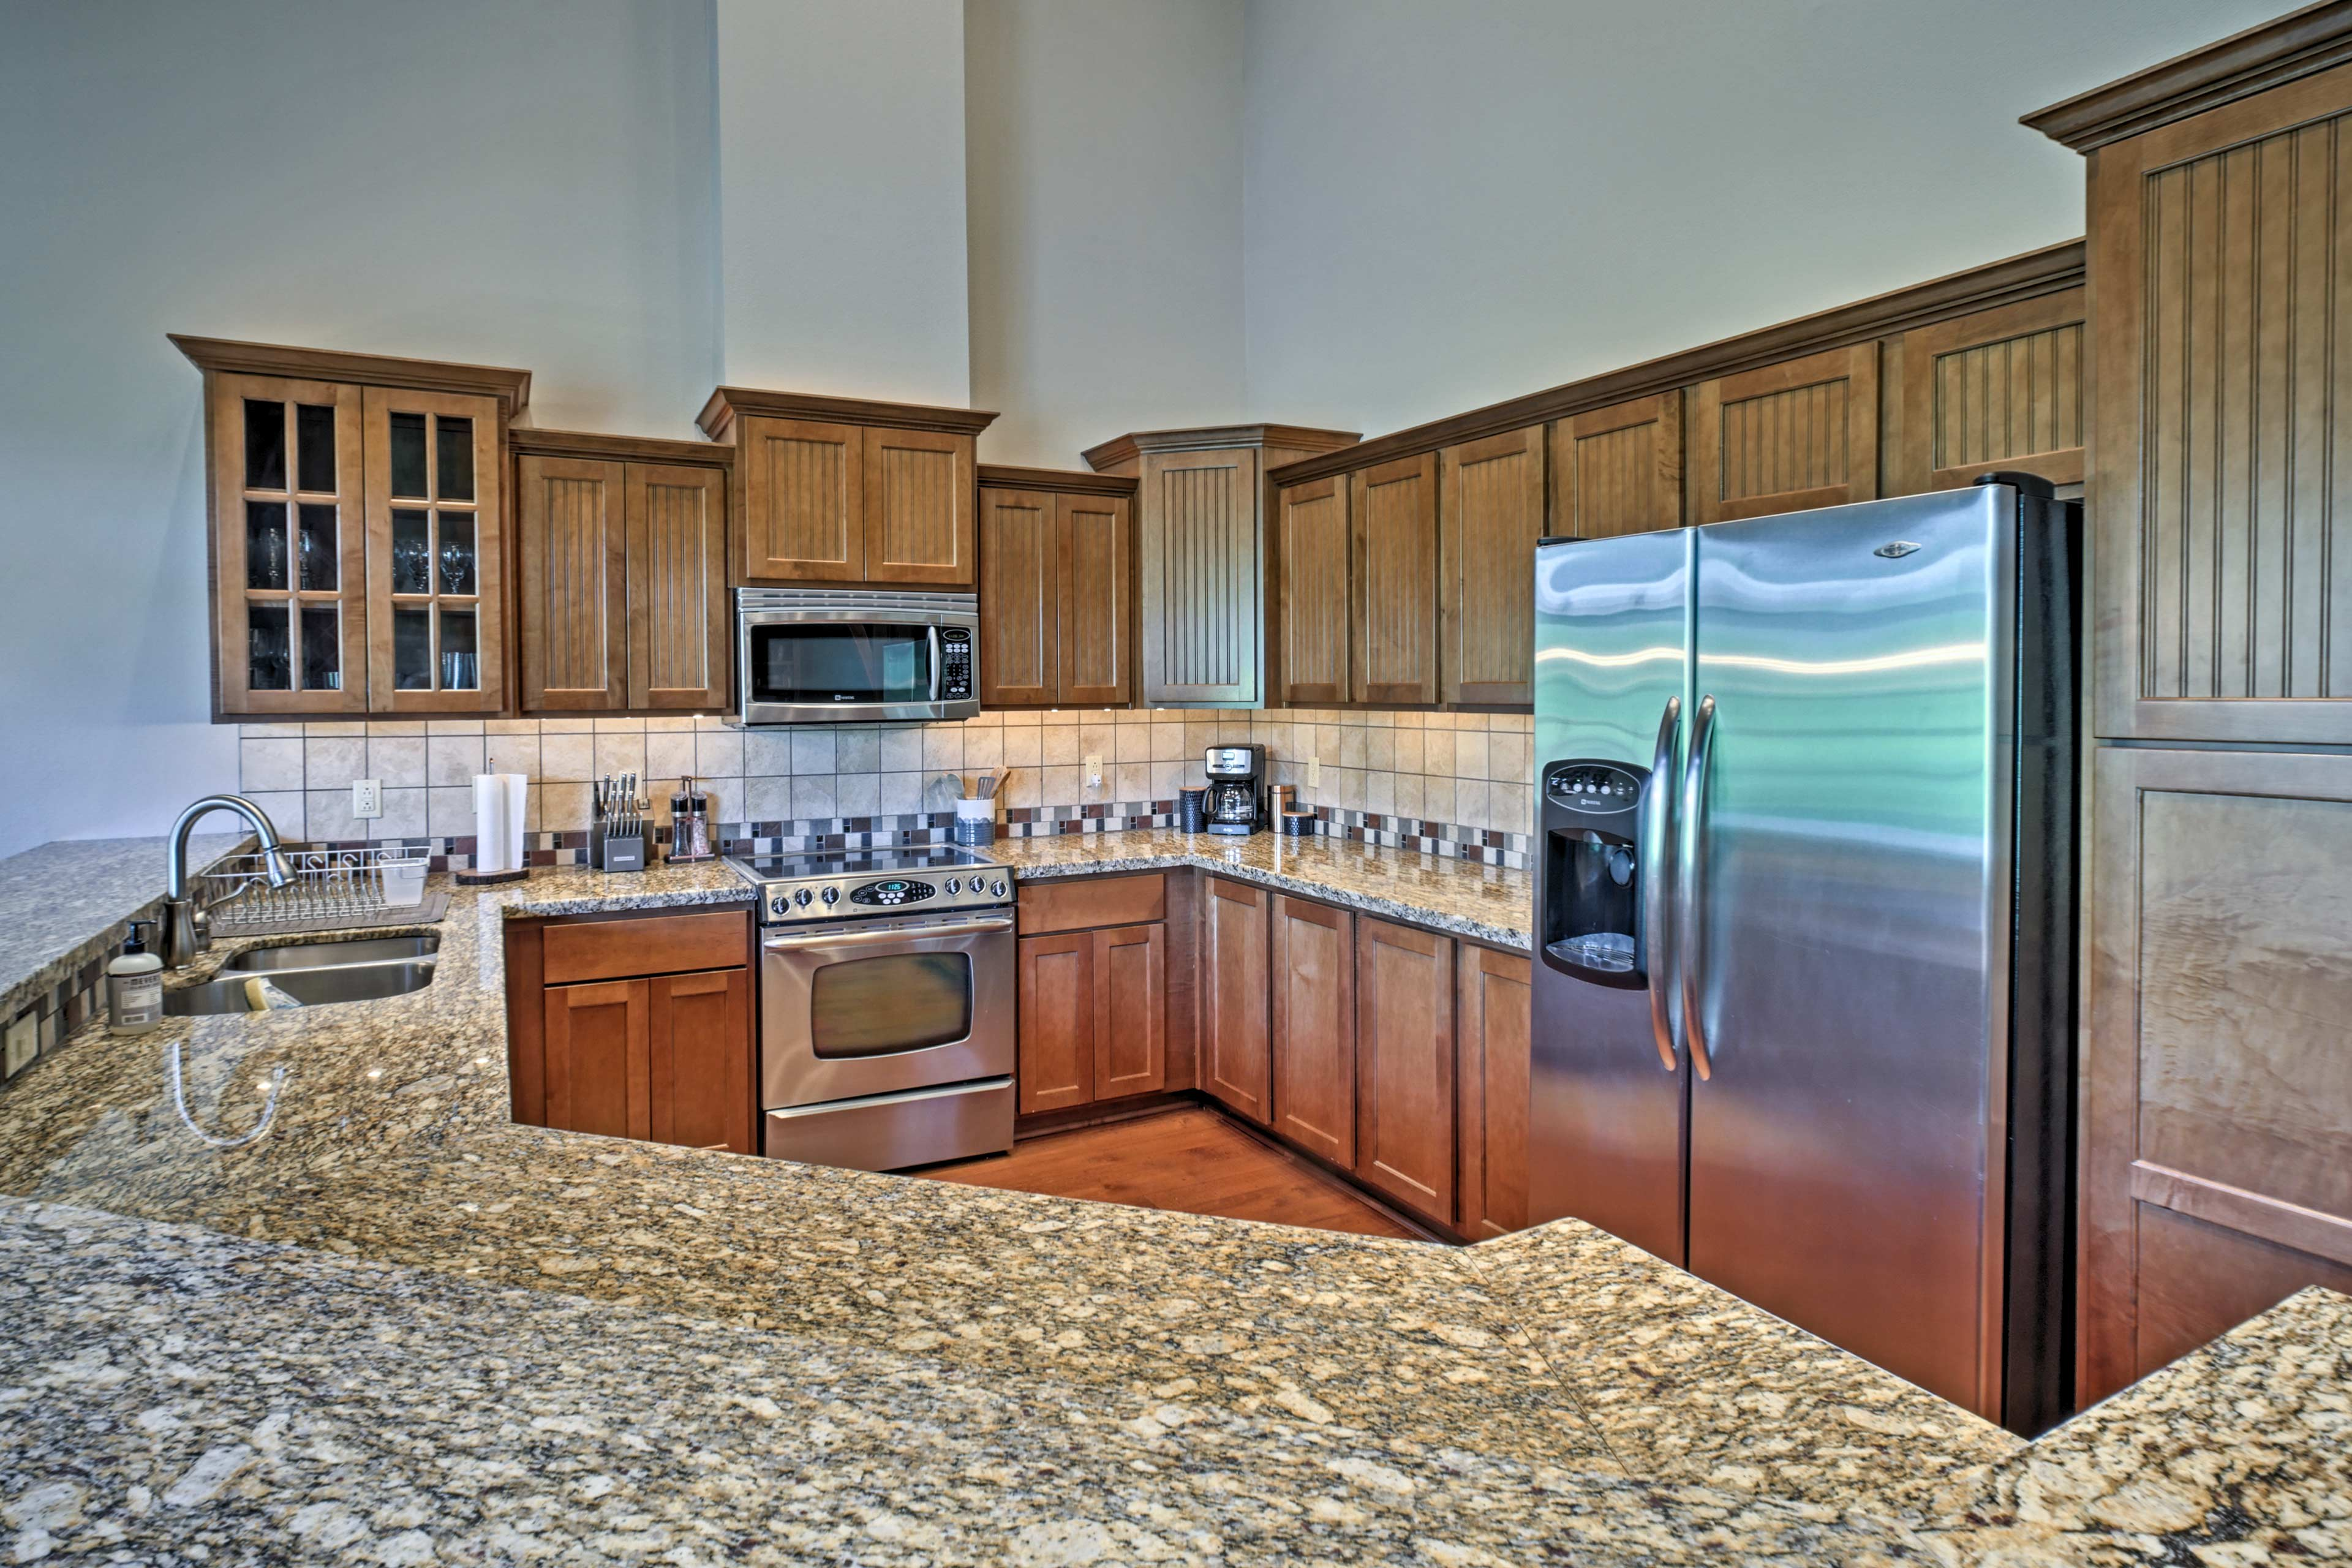 You'll have plenty of space to meal prep atop granite counters!